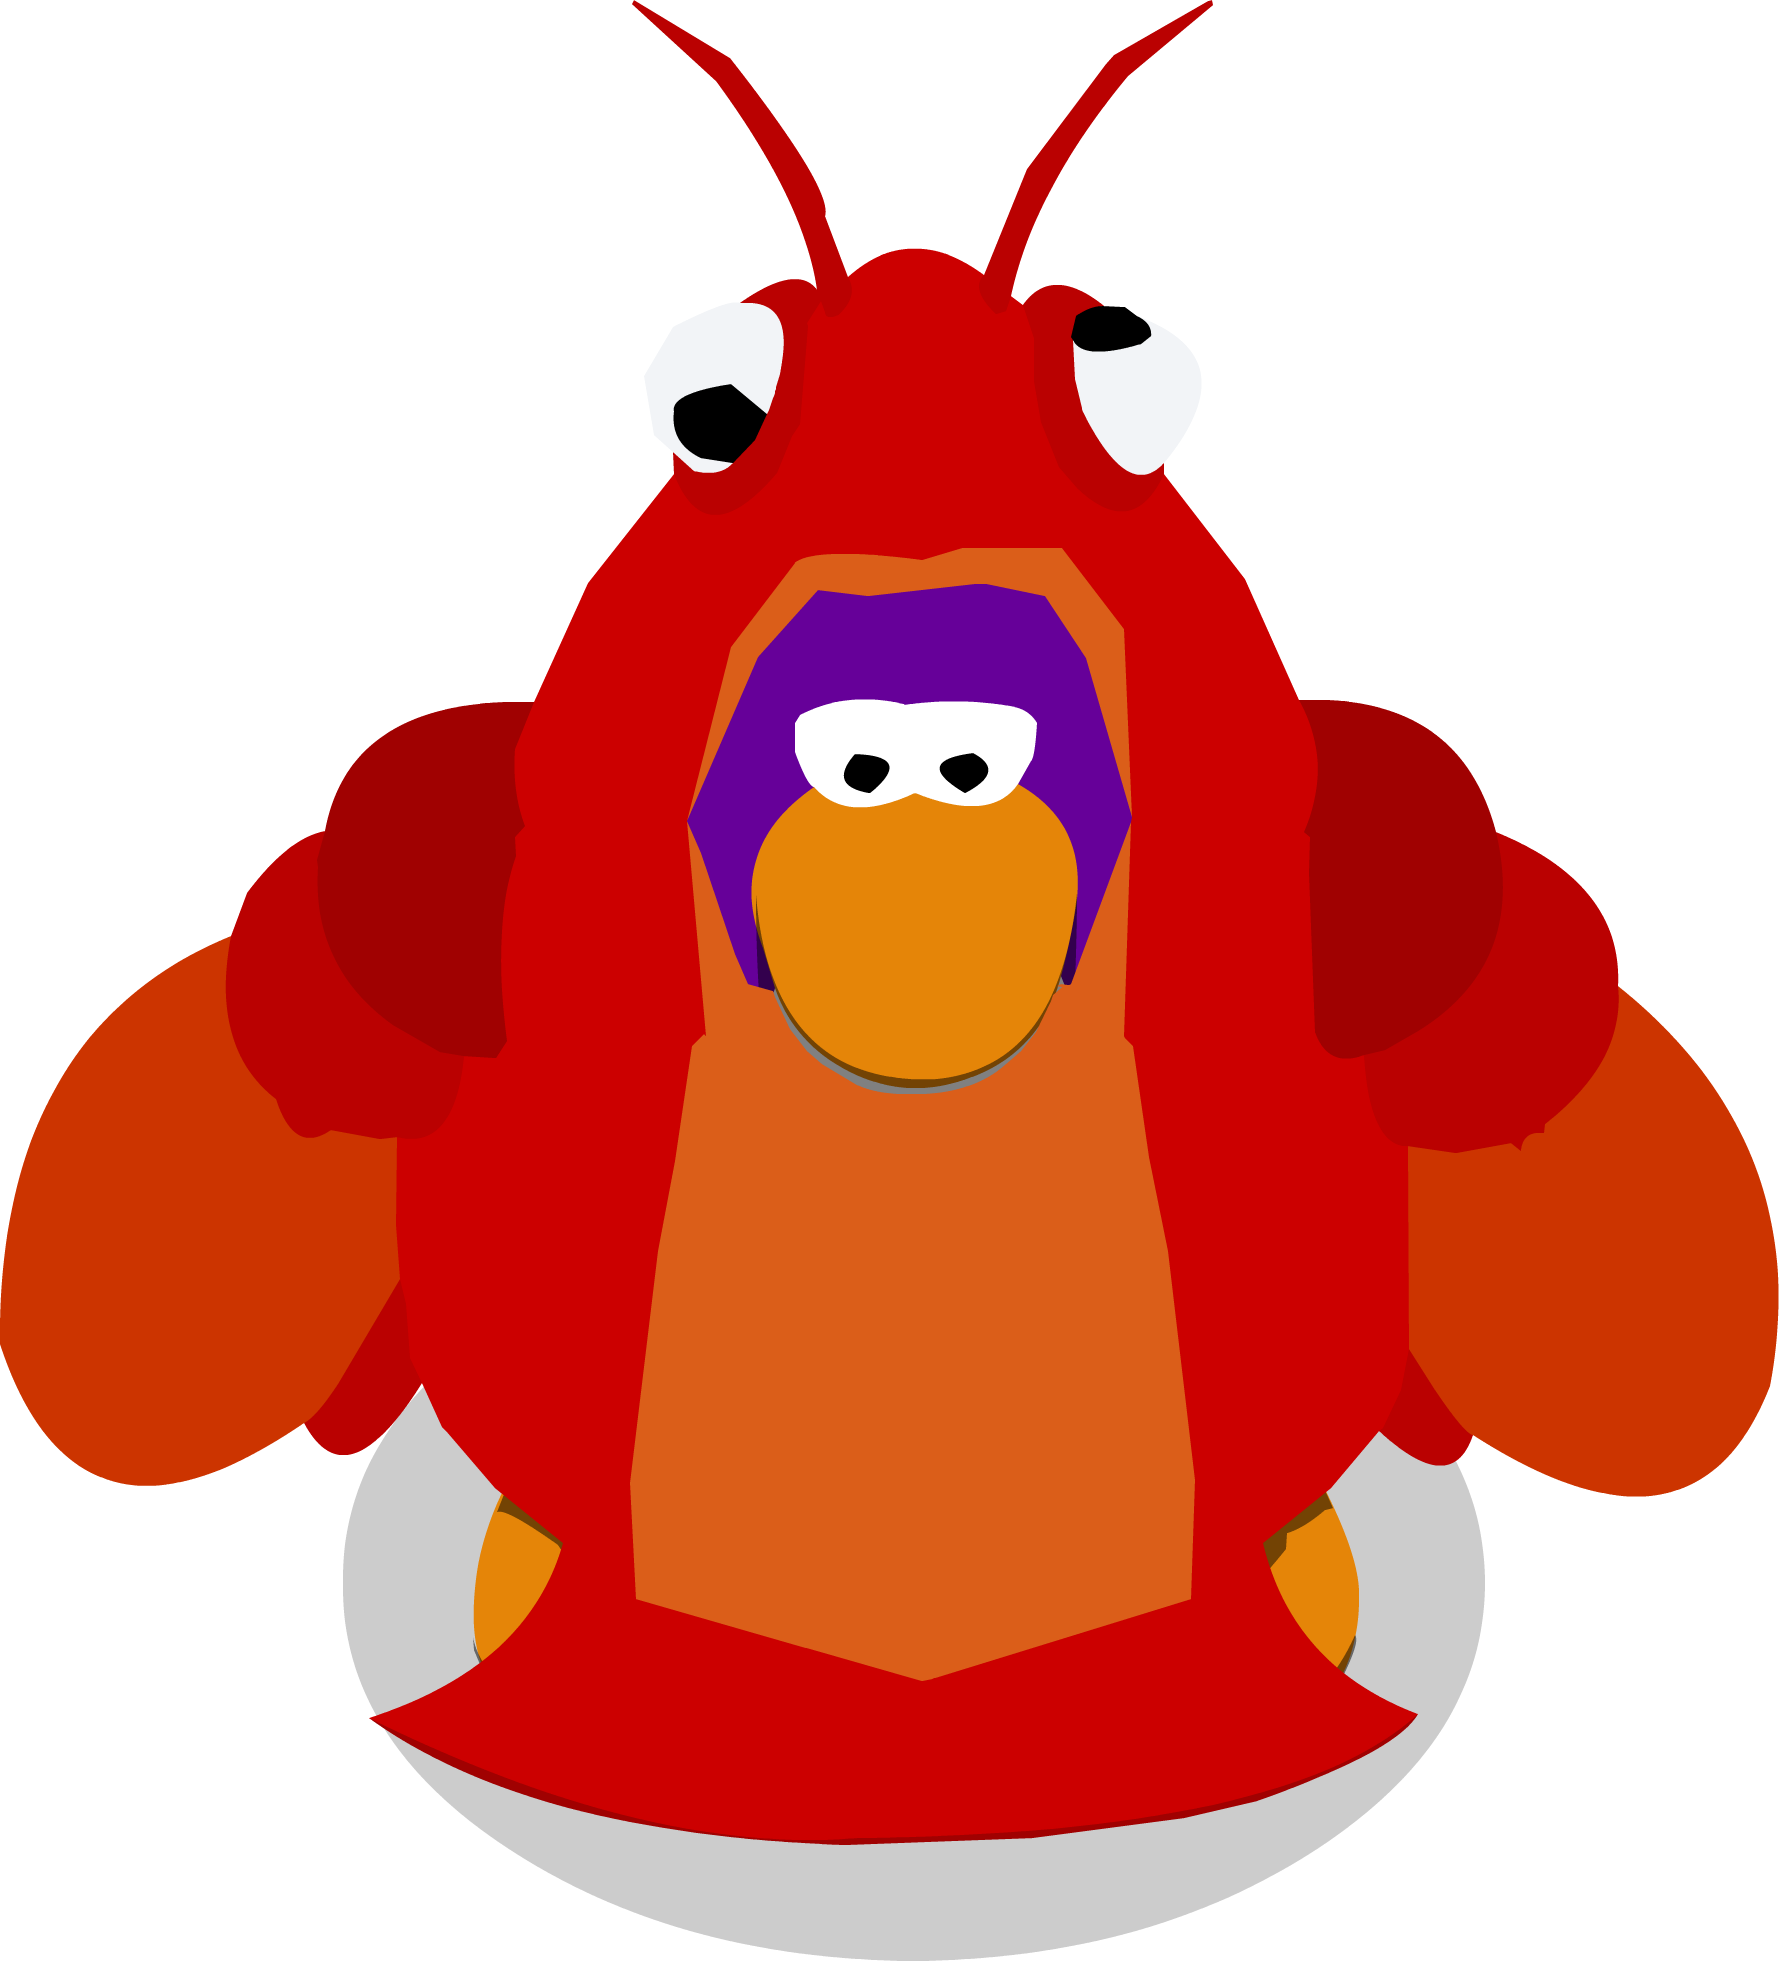 Toby the Lobster